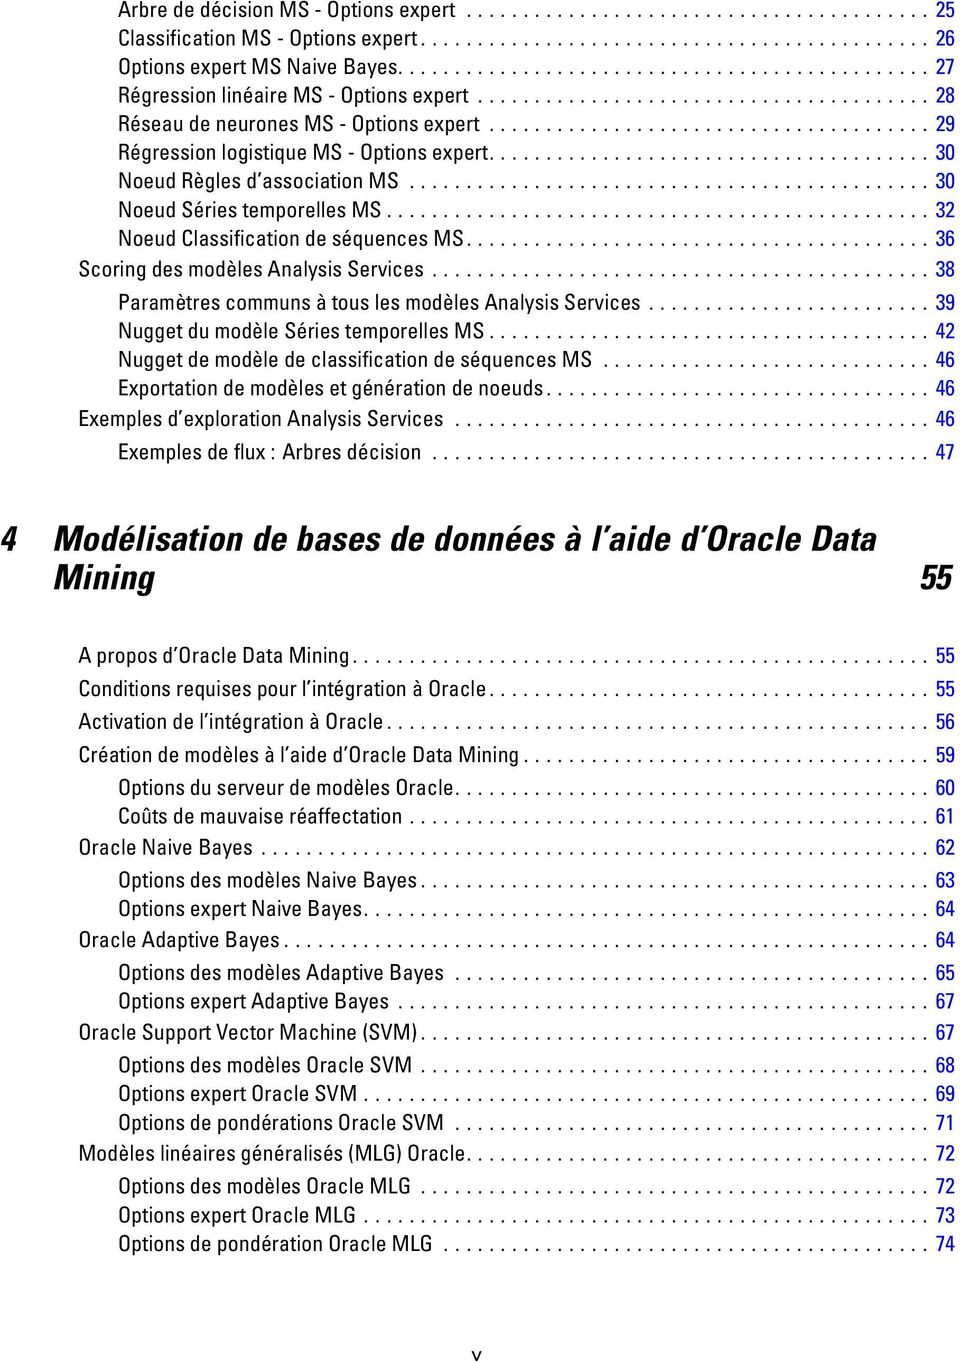 ..38 ParamètrescommunsàtouslesmodèlesAnalysisServices...39 NuggetdumodèleSériestemporellesMS...42 NuggetdemodèledeclassificationdeséquencesMS...46 Exportationdemodèlesetgénérationdenoeuds.